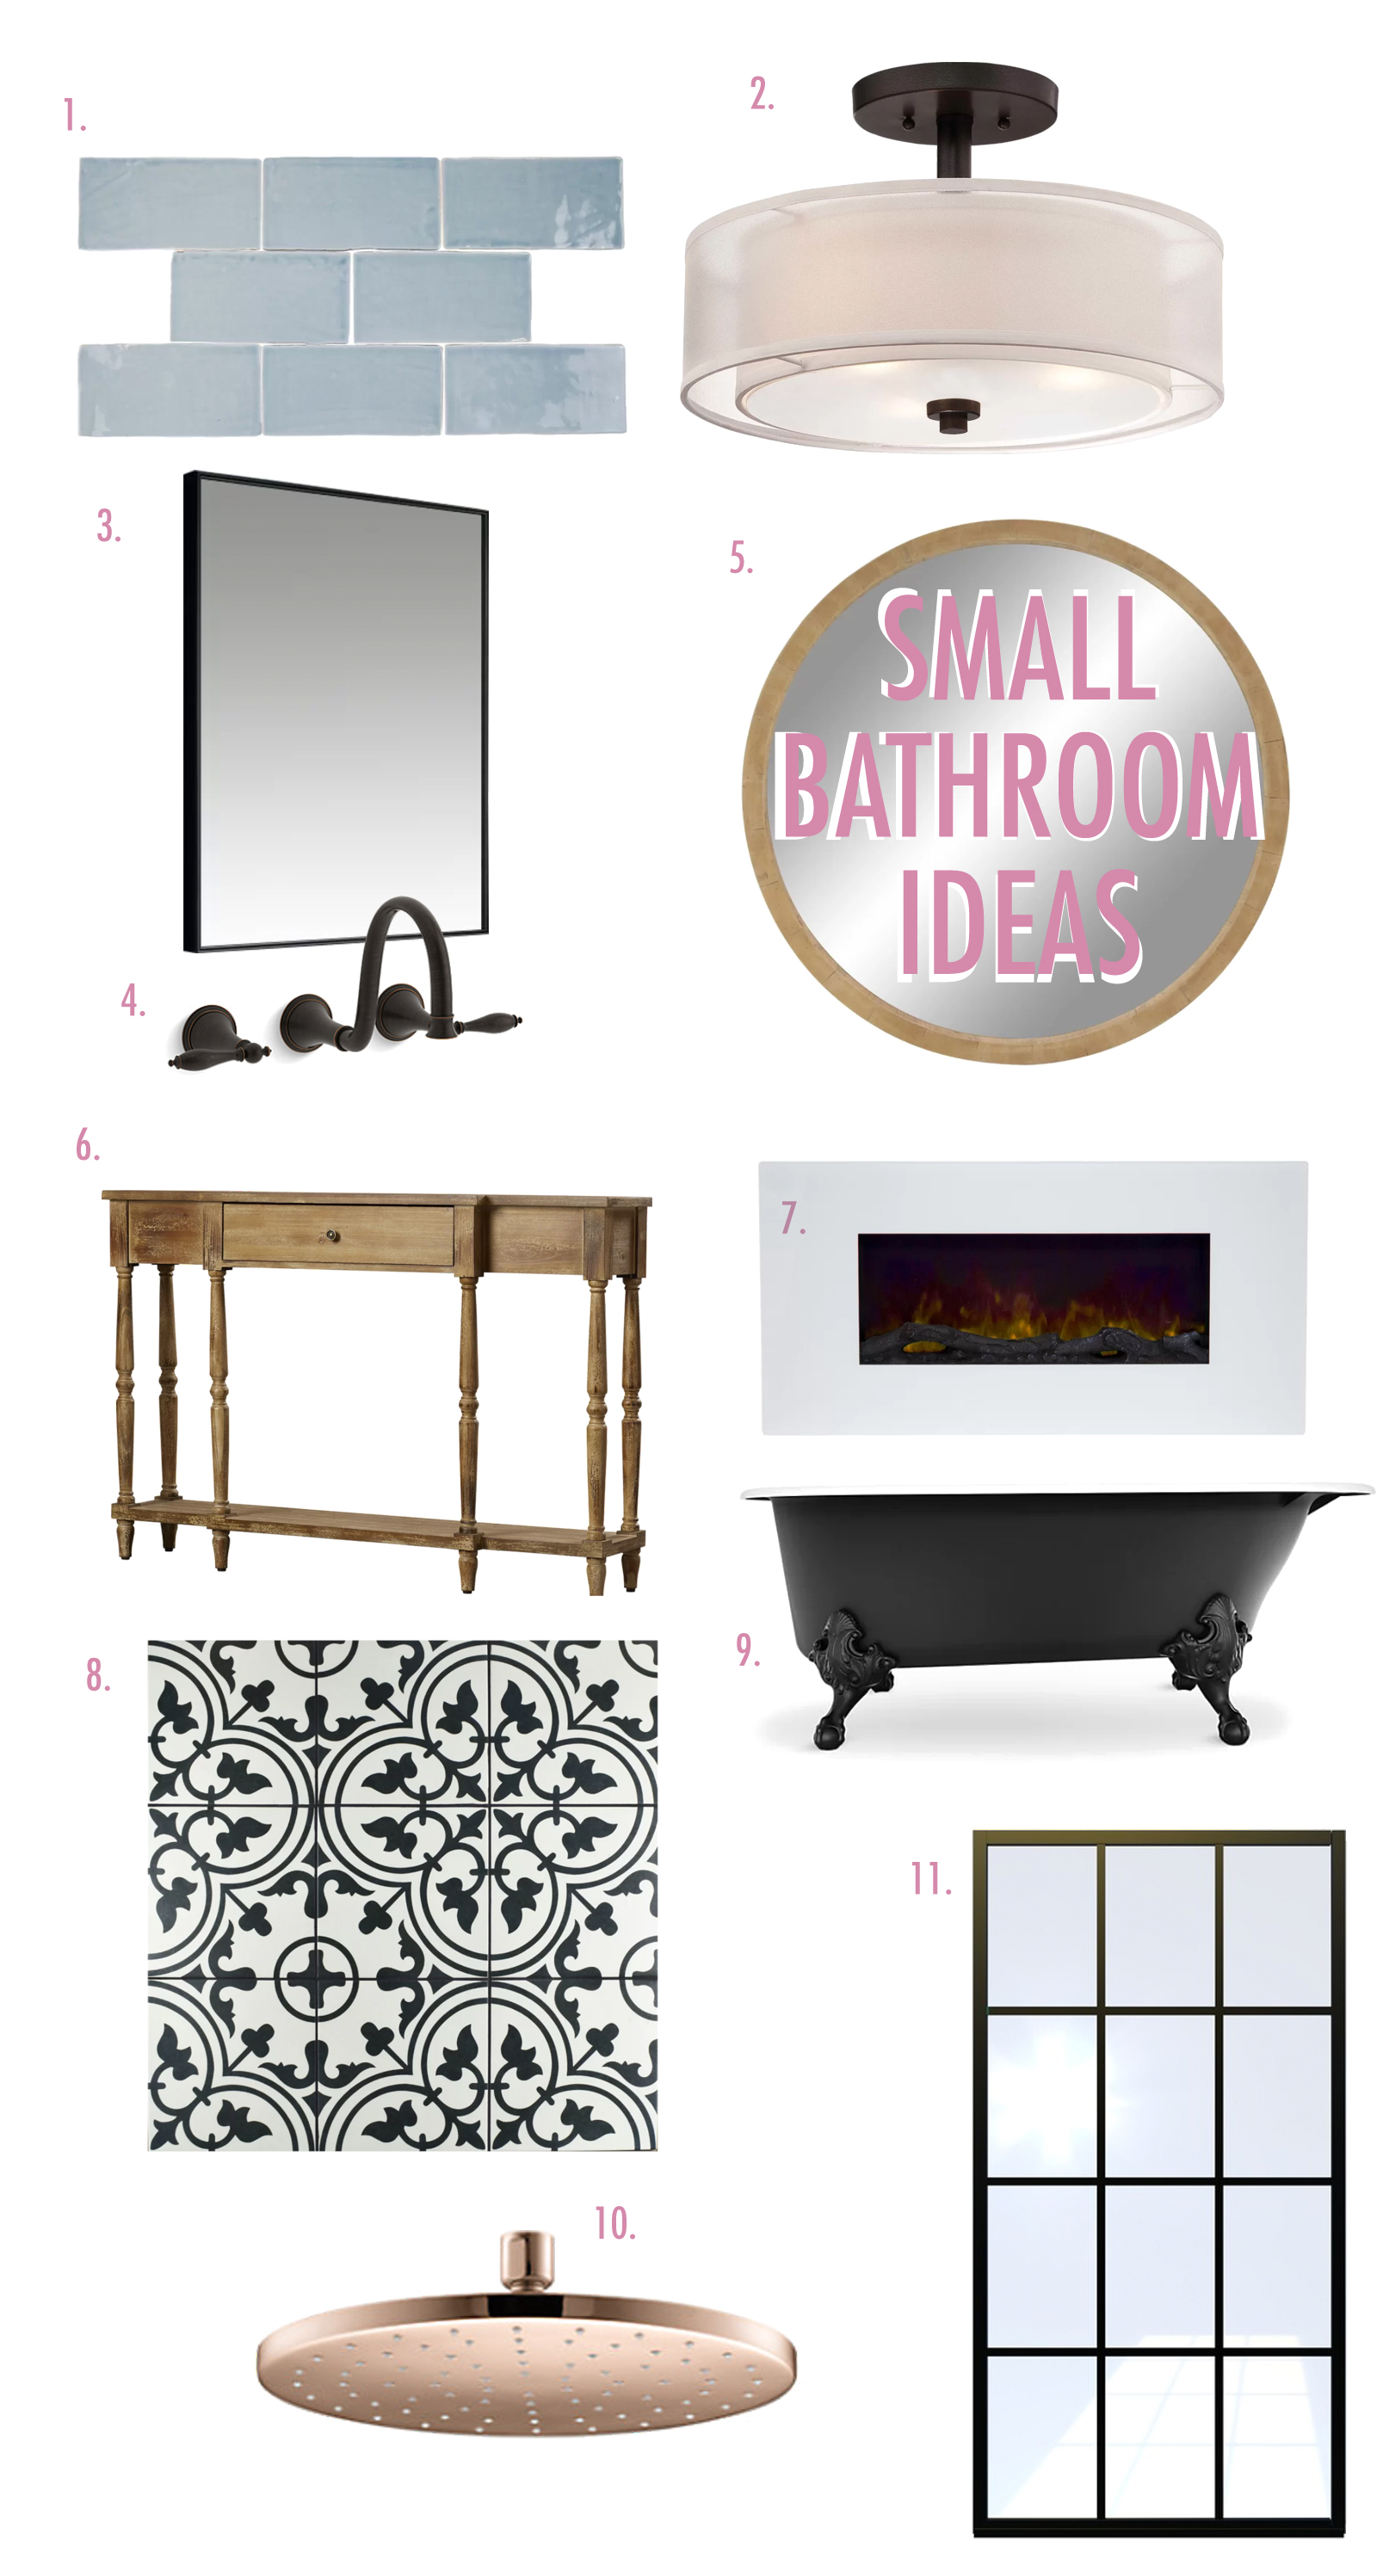 Small bathroom Ideas Products